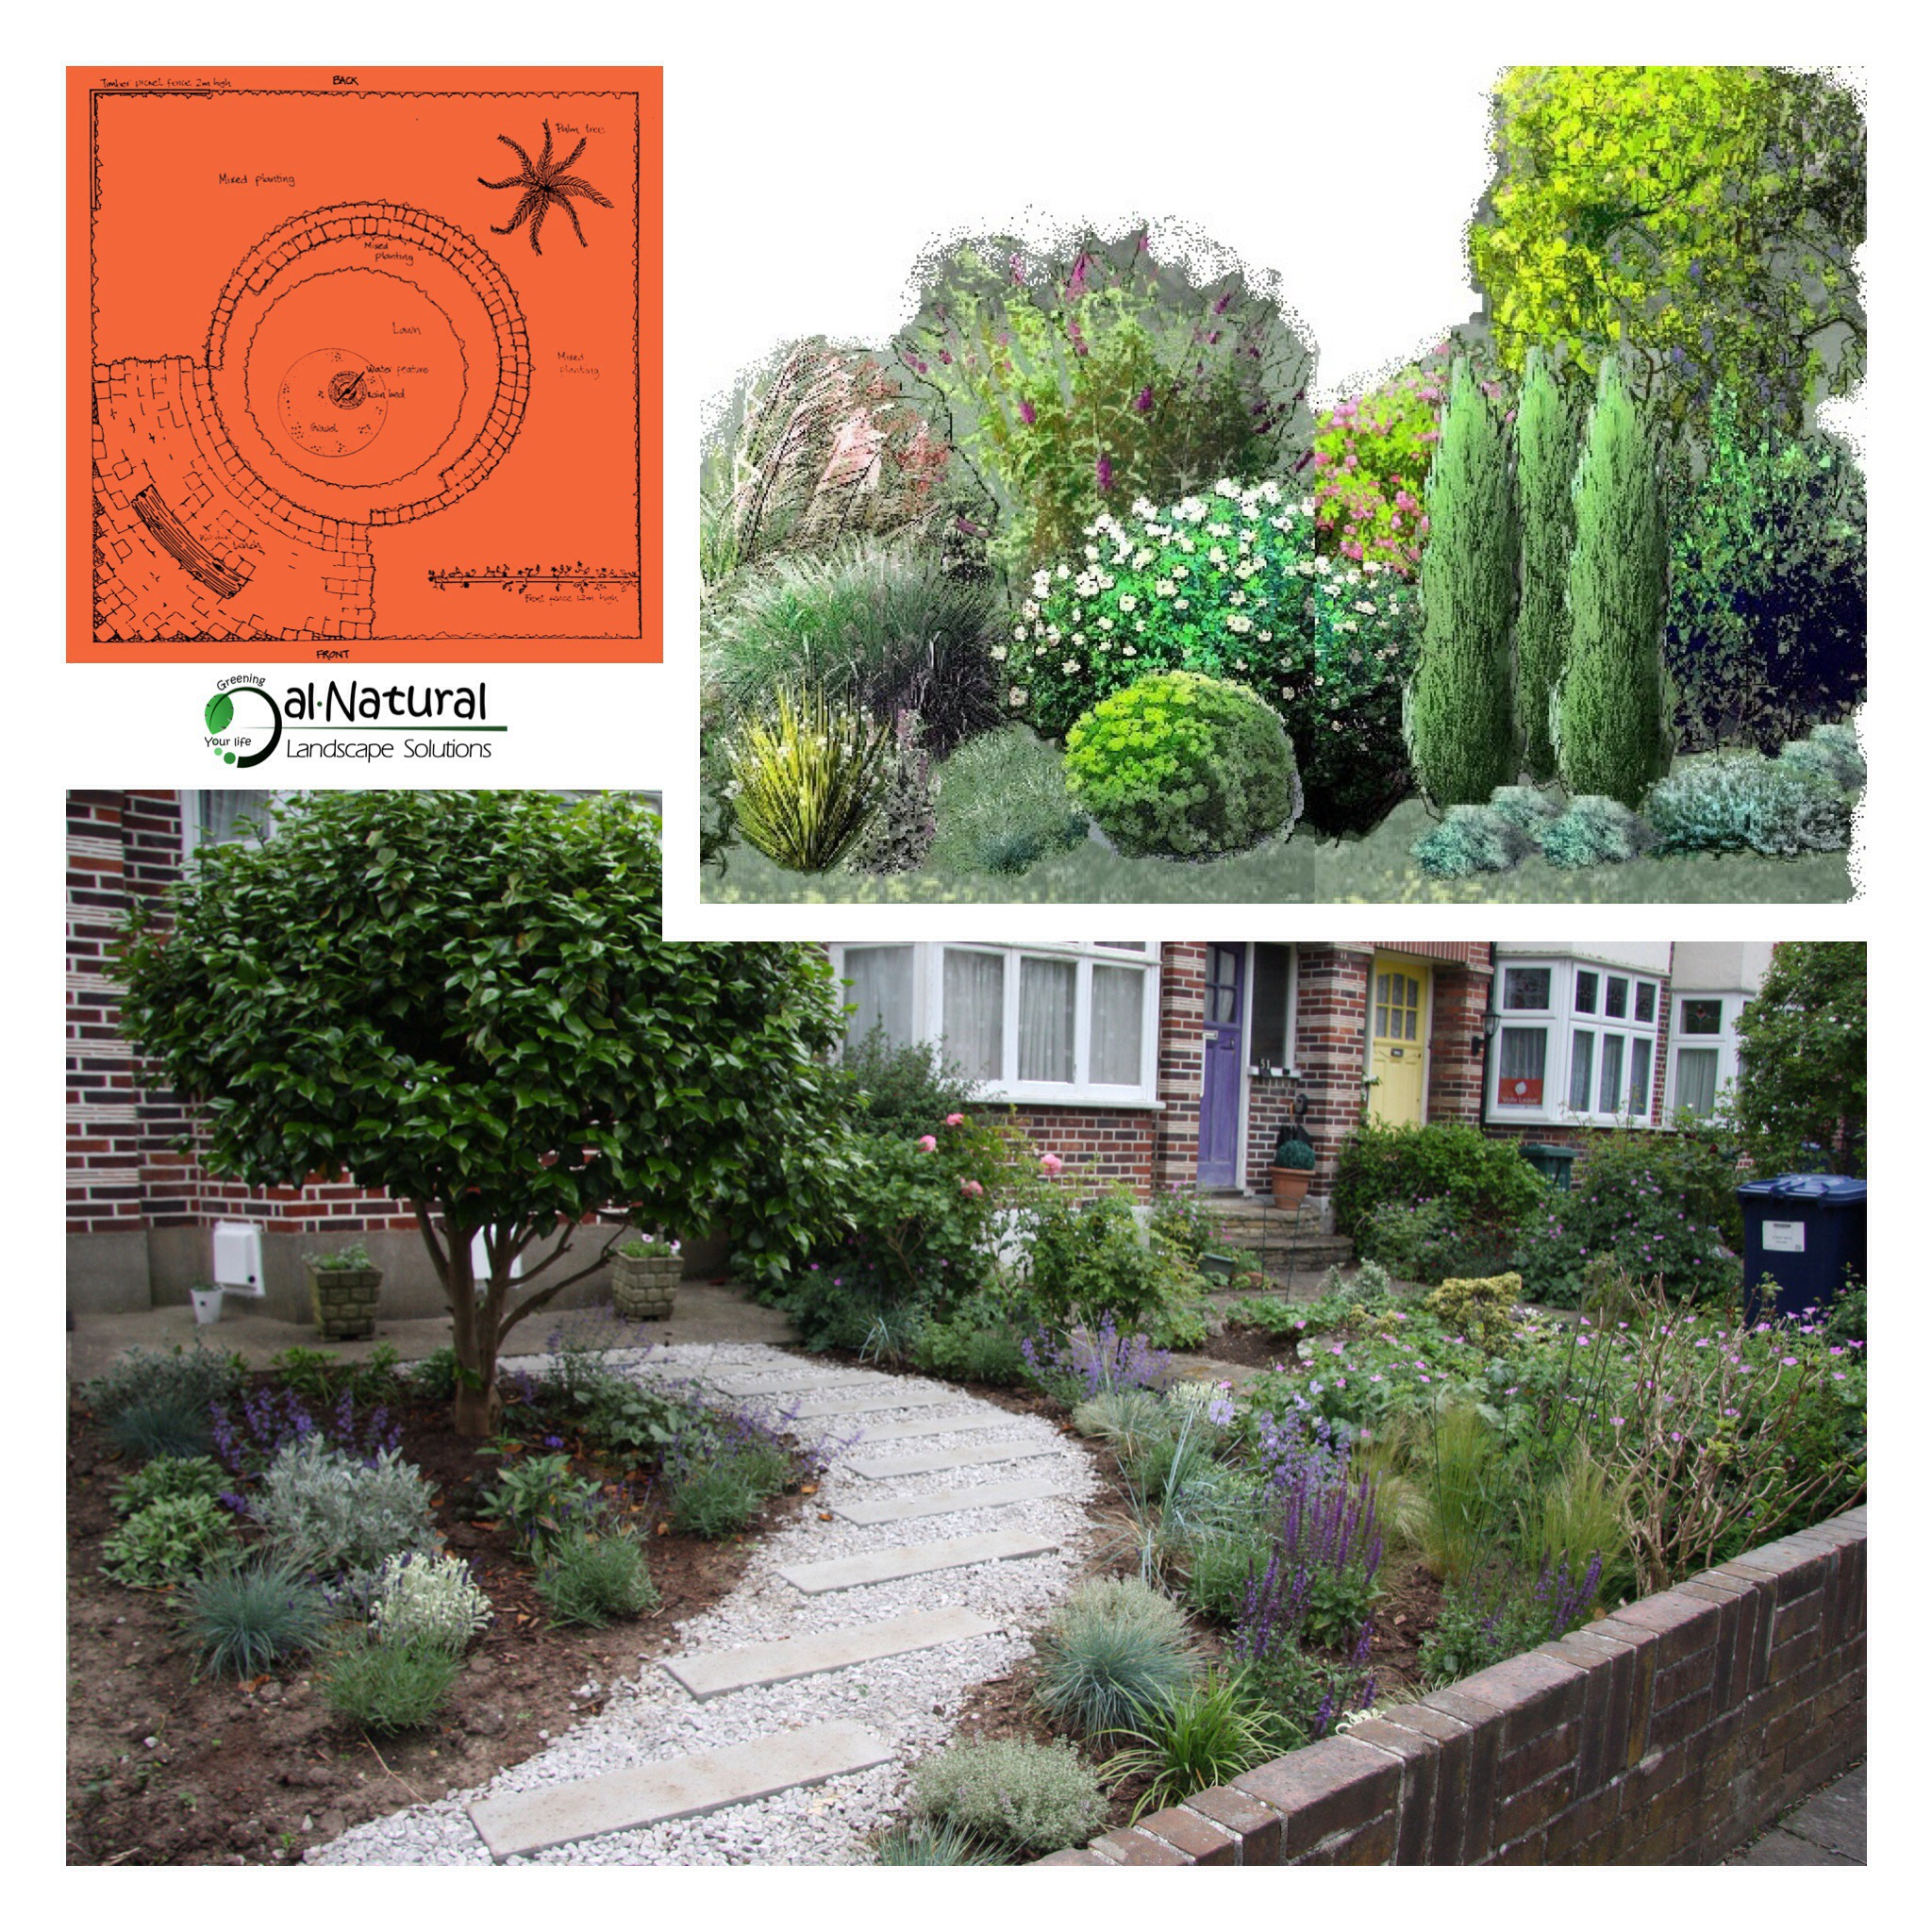 Garden and landscape design in south east london for Garden design east london